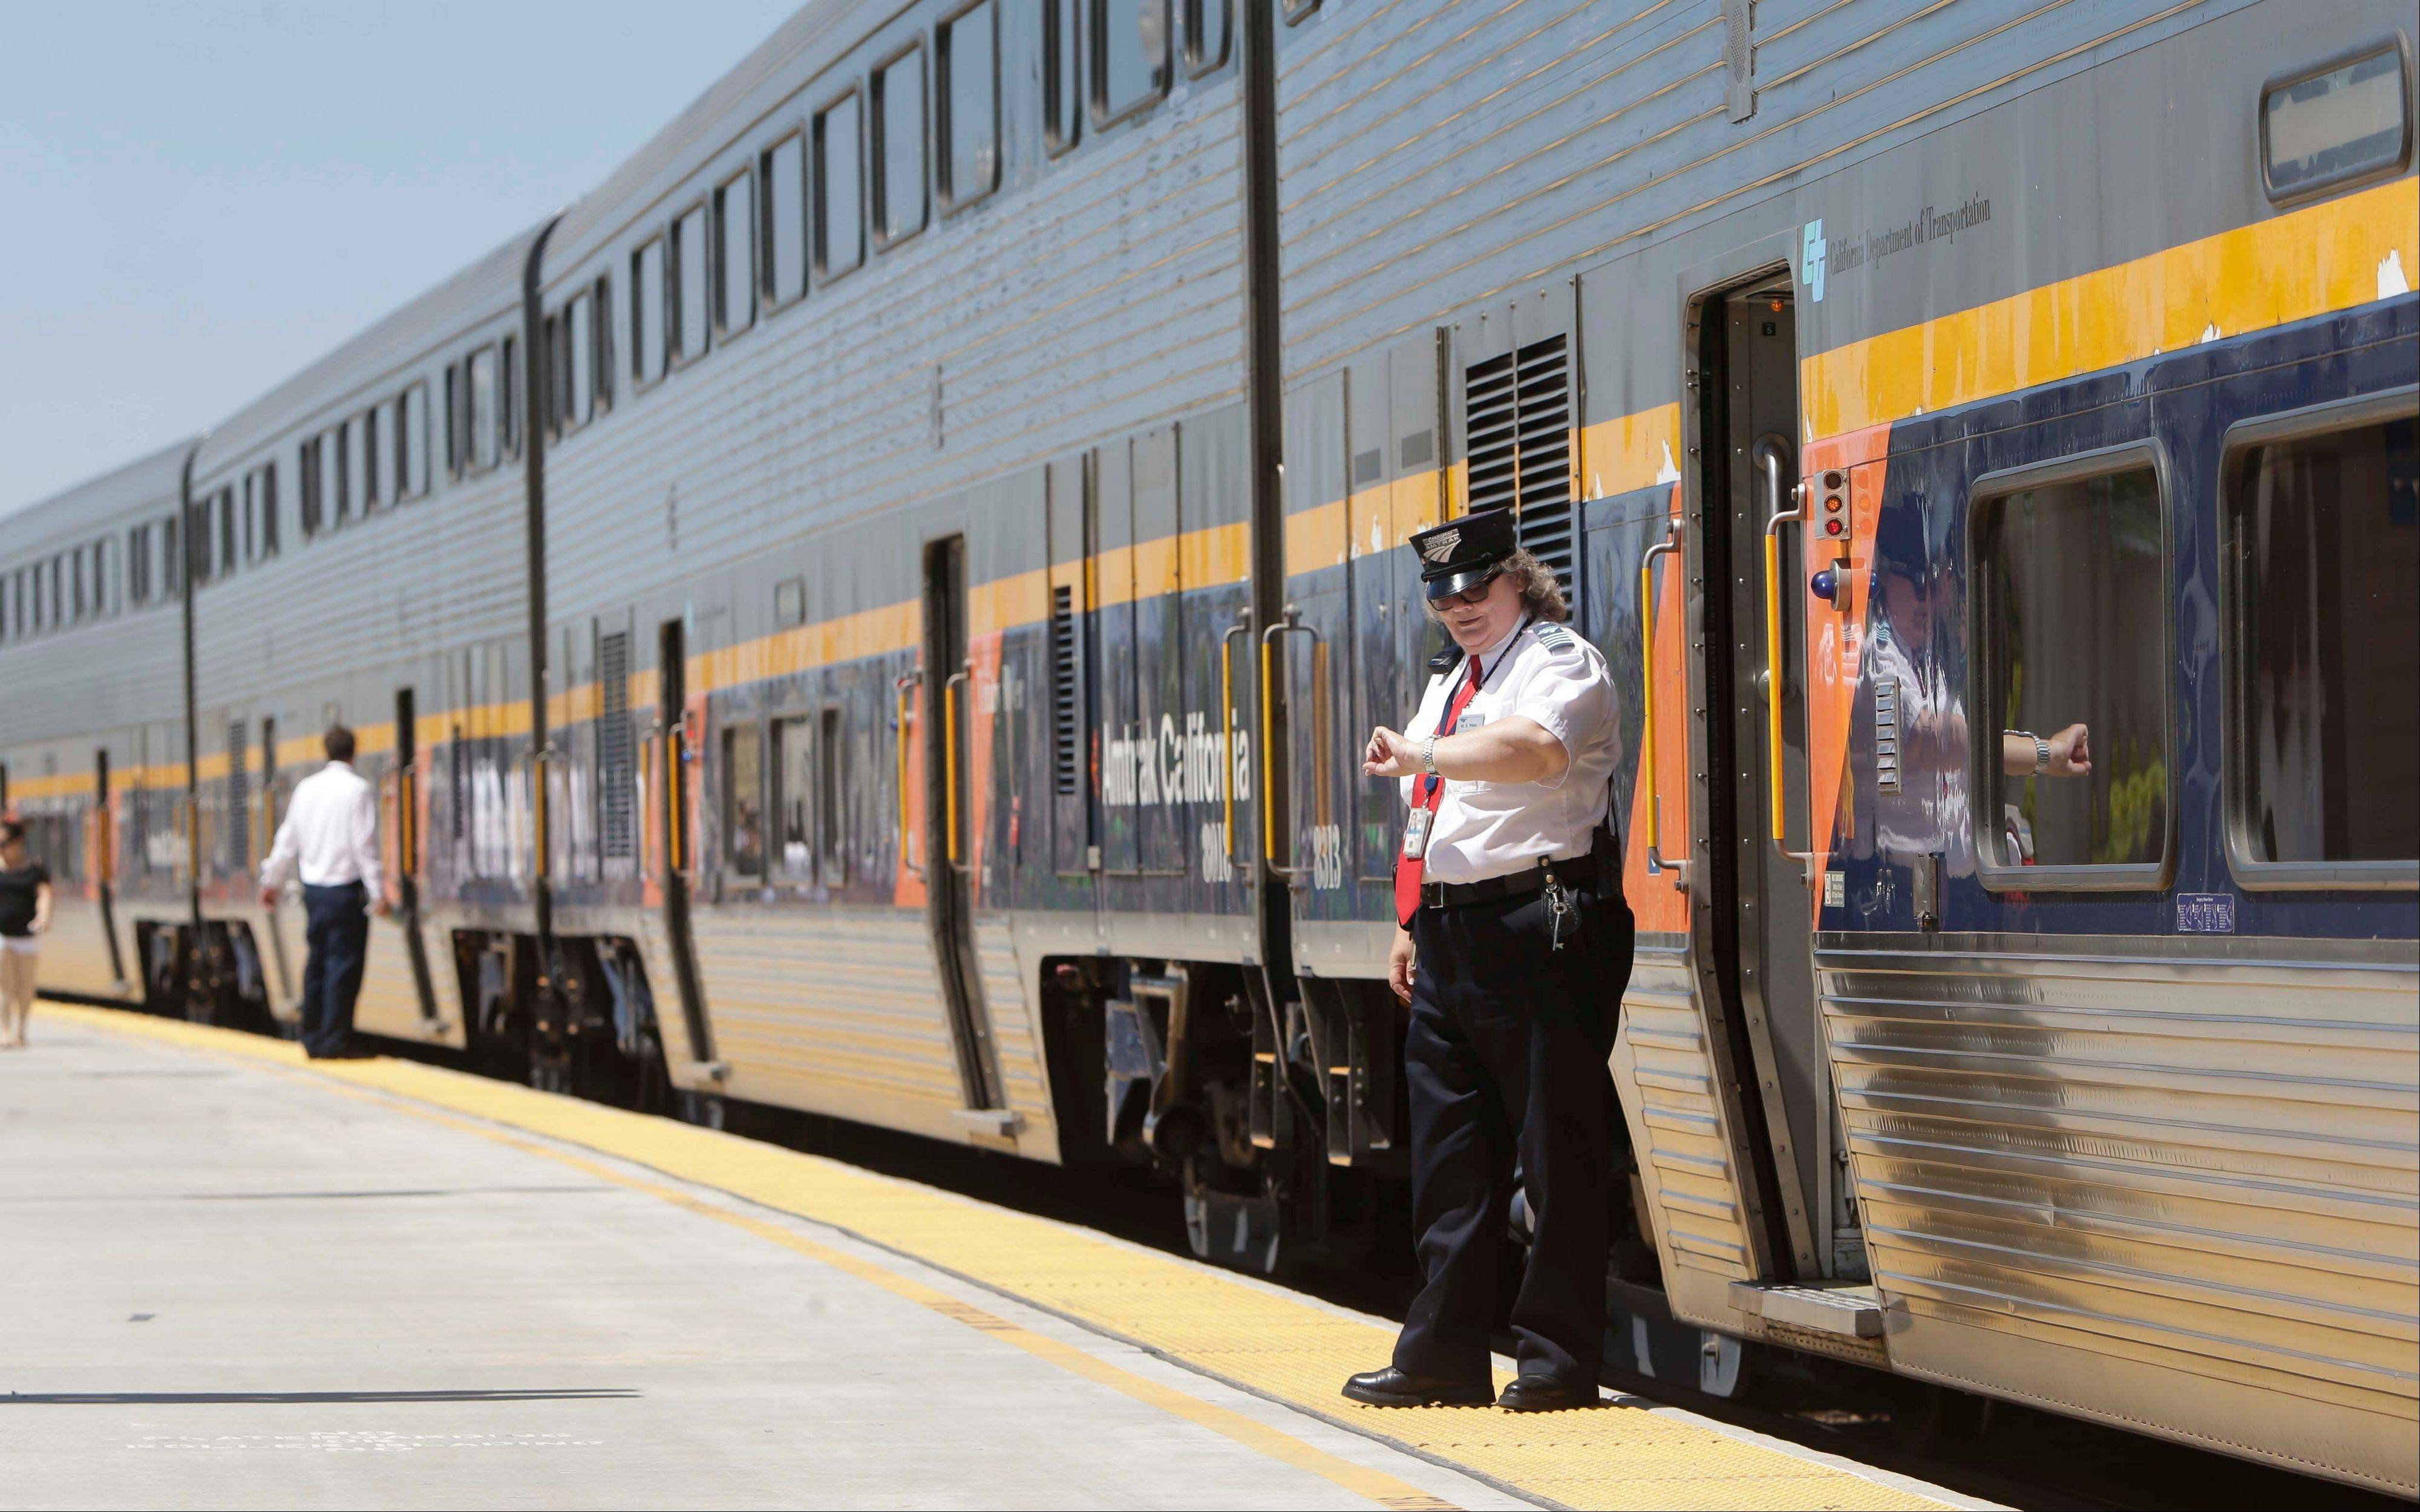 An Amtrak conductor checks the time as the passenger train takes on passengers in Hanford, Calif. The state's plan to build the first high-speed rail system in the nation is intended to alleviate gridlock, connect the Central Valley to better jobs and ease pollution, but many residents oppose the $68 billion project.